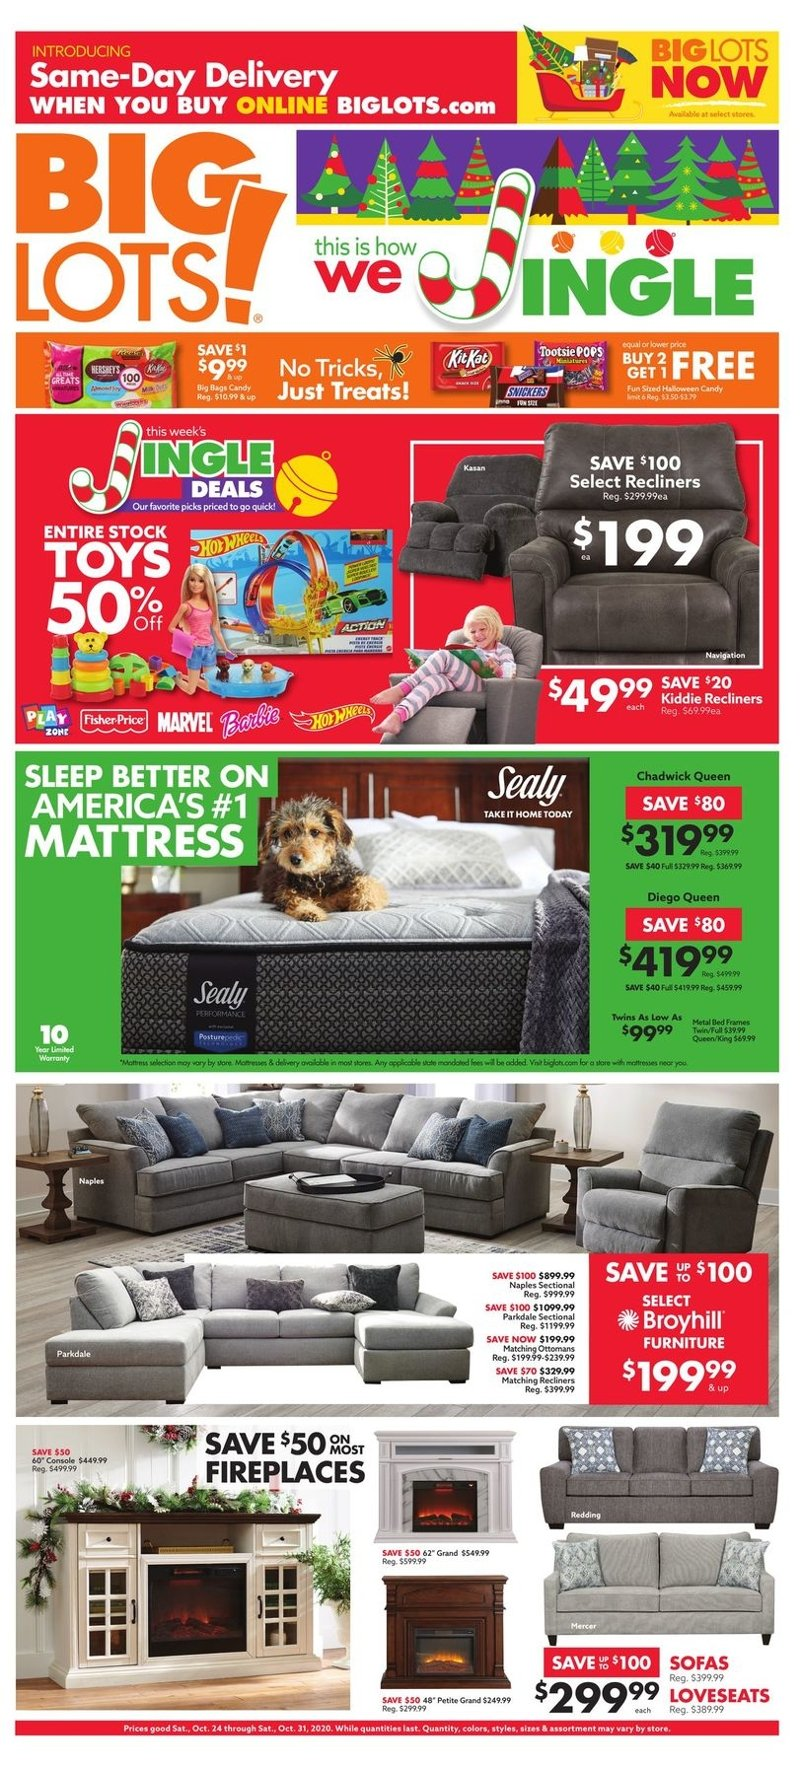 Big Lots Weekly October 24 - 31, 2020 Page 1